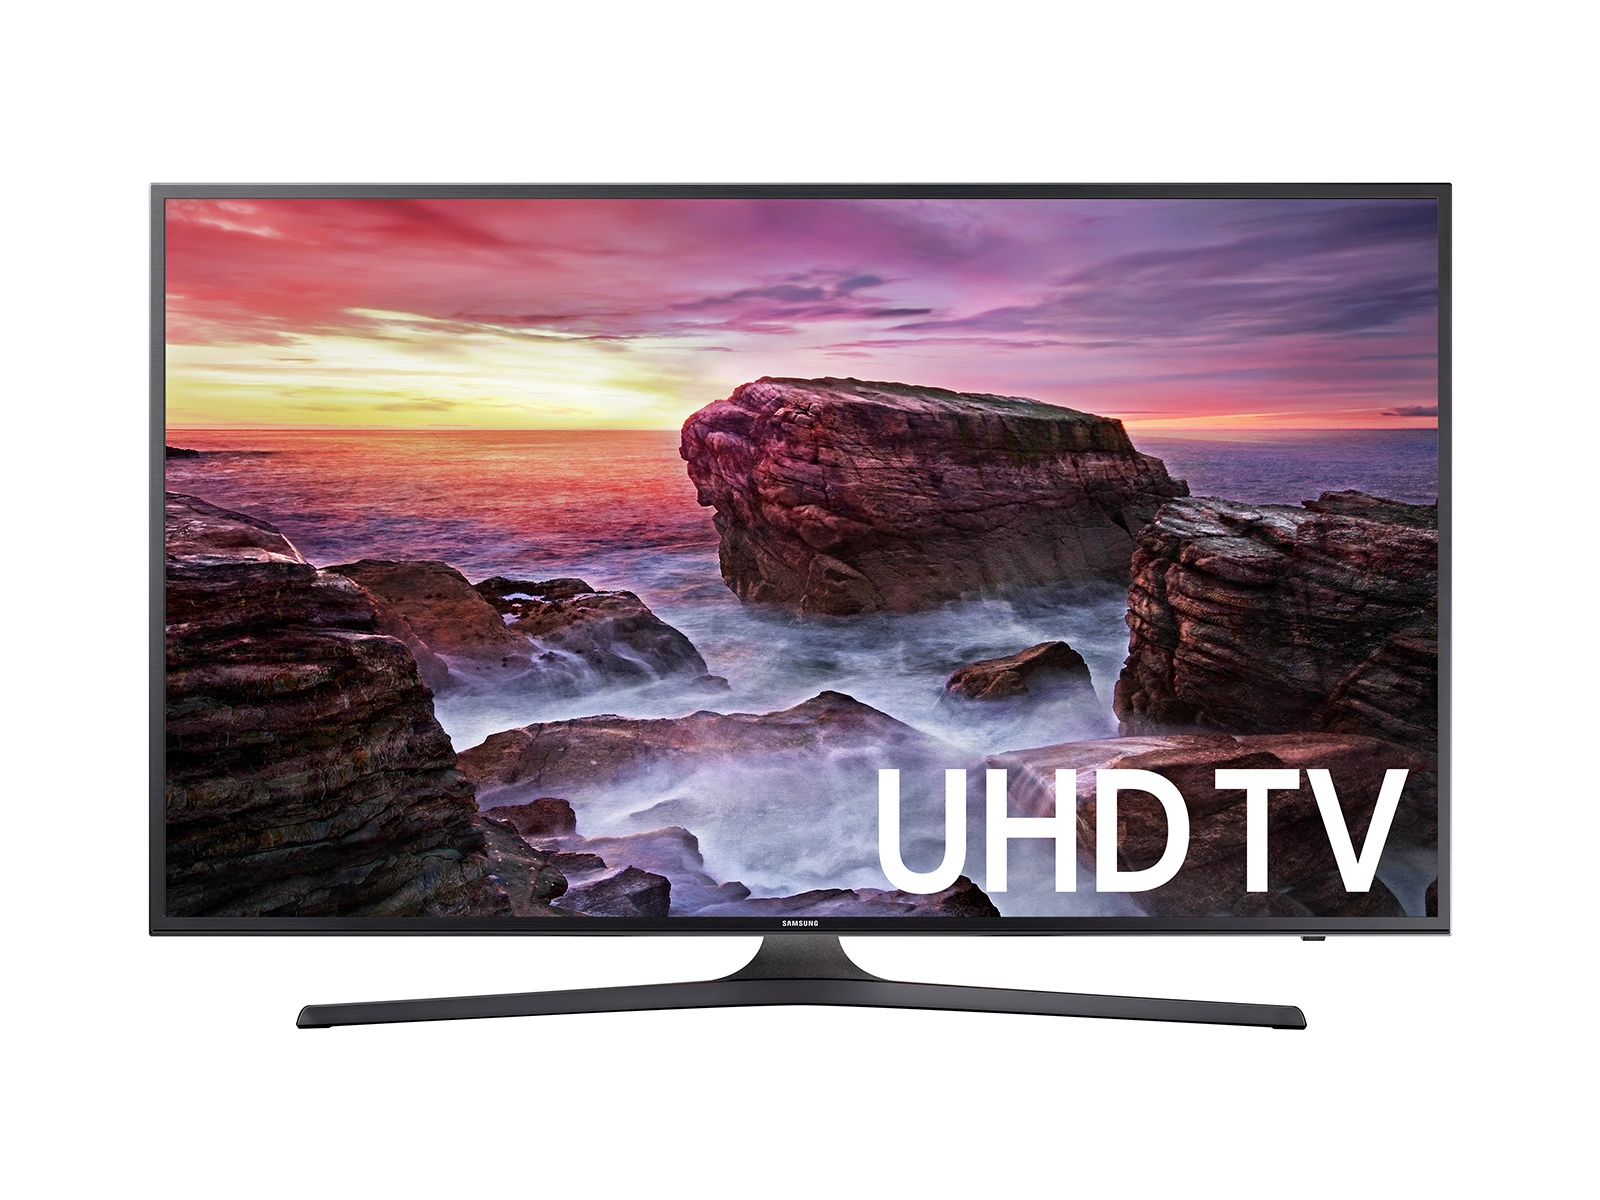 2017 Uhd Smart Tv Mu6290 Owner Information Support Samsung Us